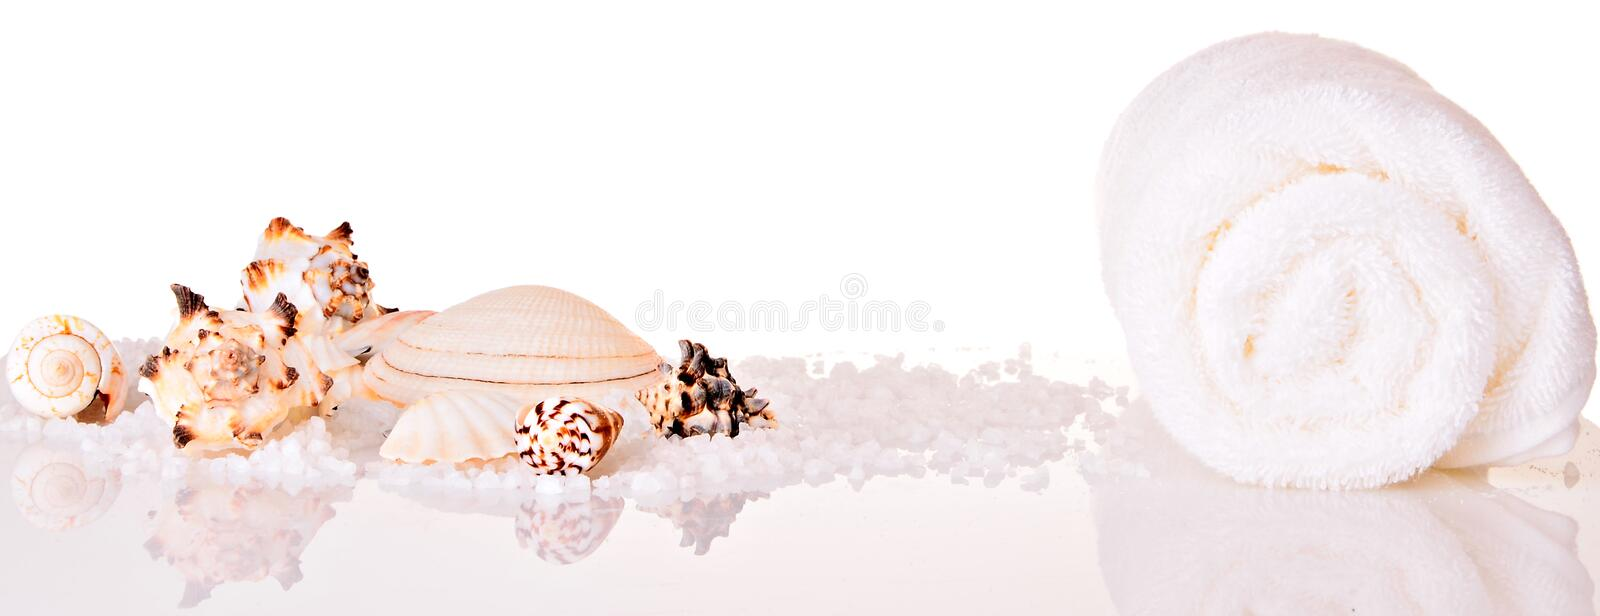 Spa salon relax royalty free stock images